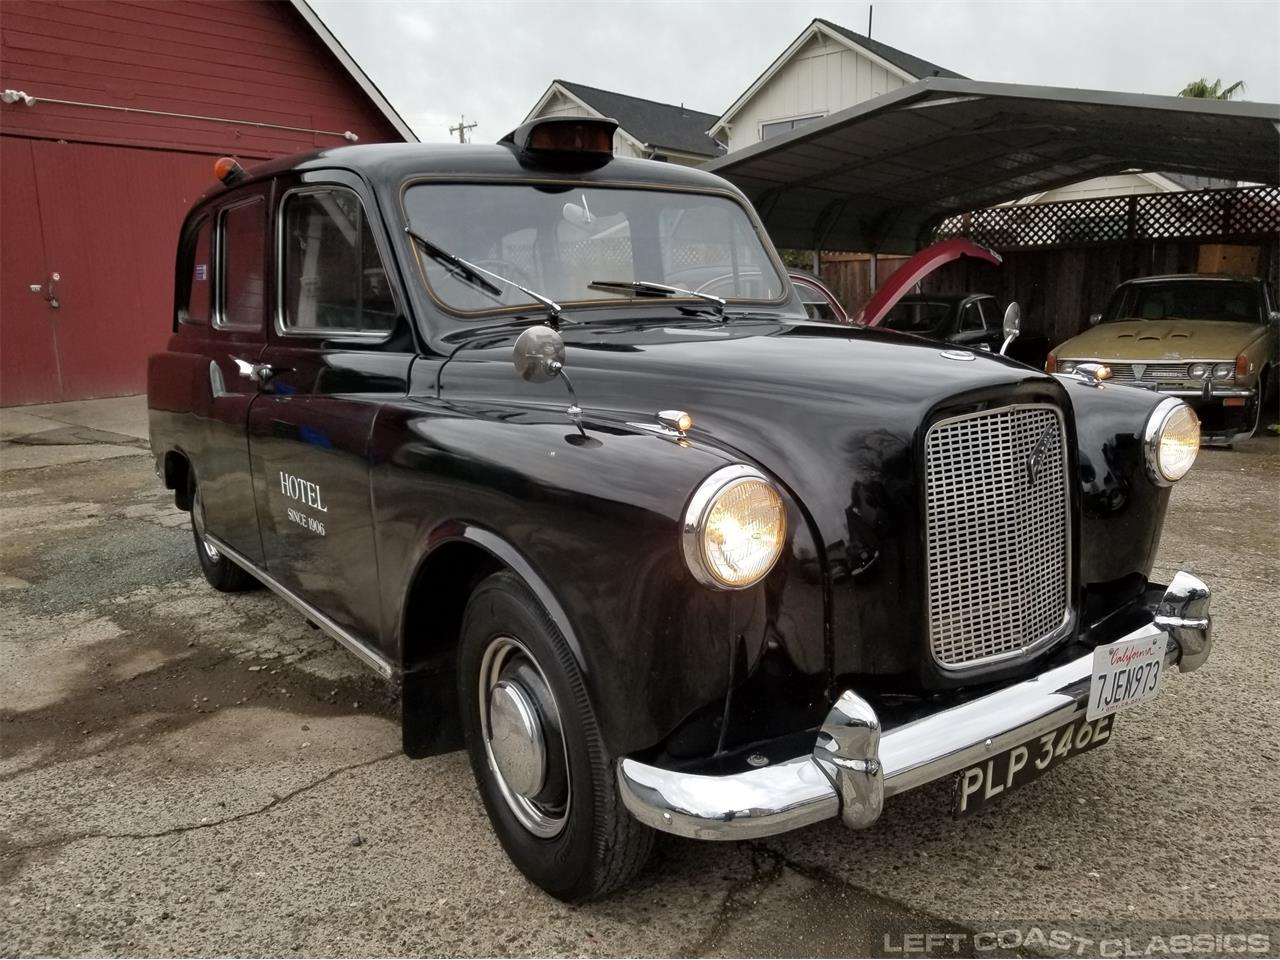 Large Picture of 1967 FX4 Taxi Cab located in SONOMA California - $12,500.00 Offered by Left Coast Classics - PKBX